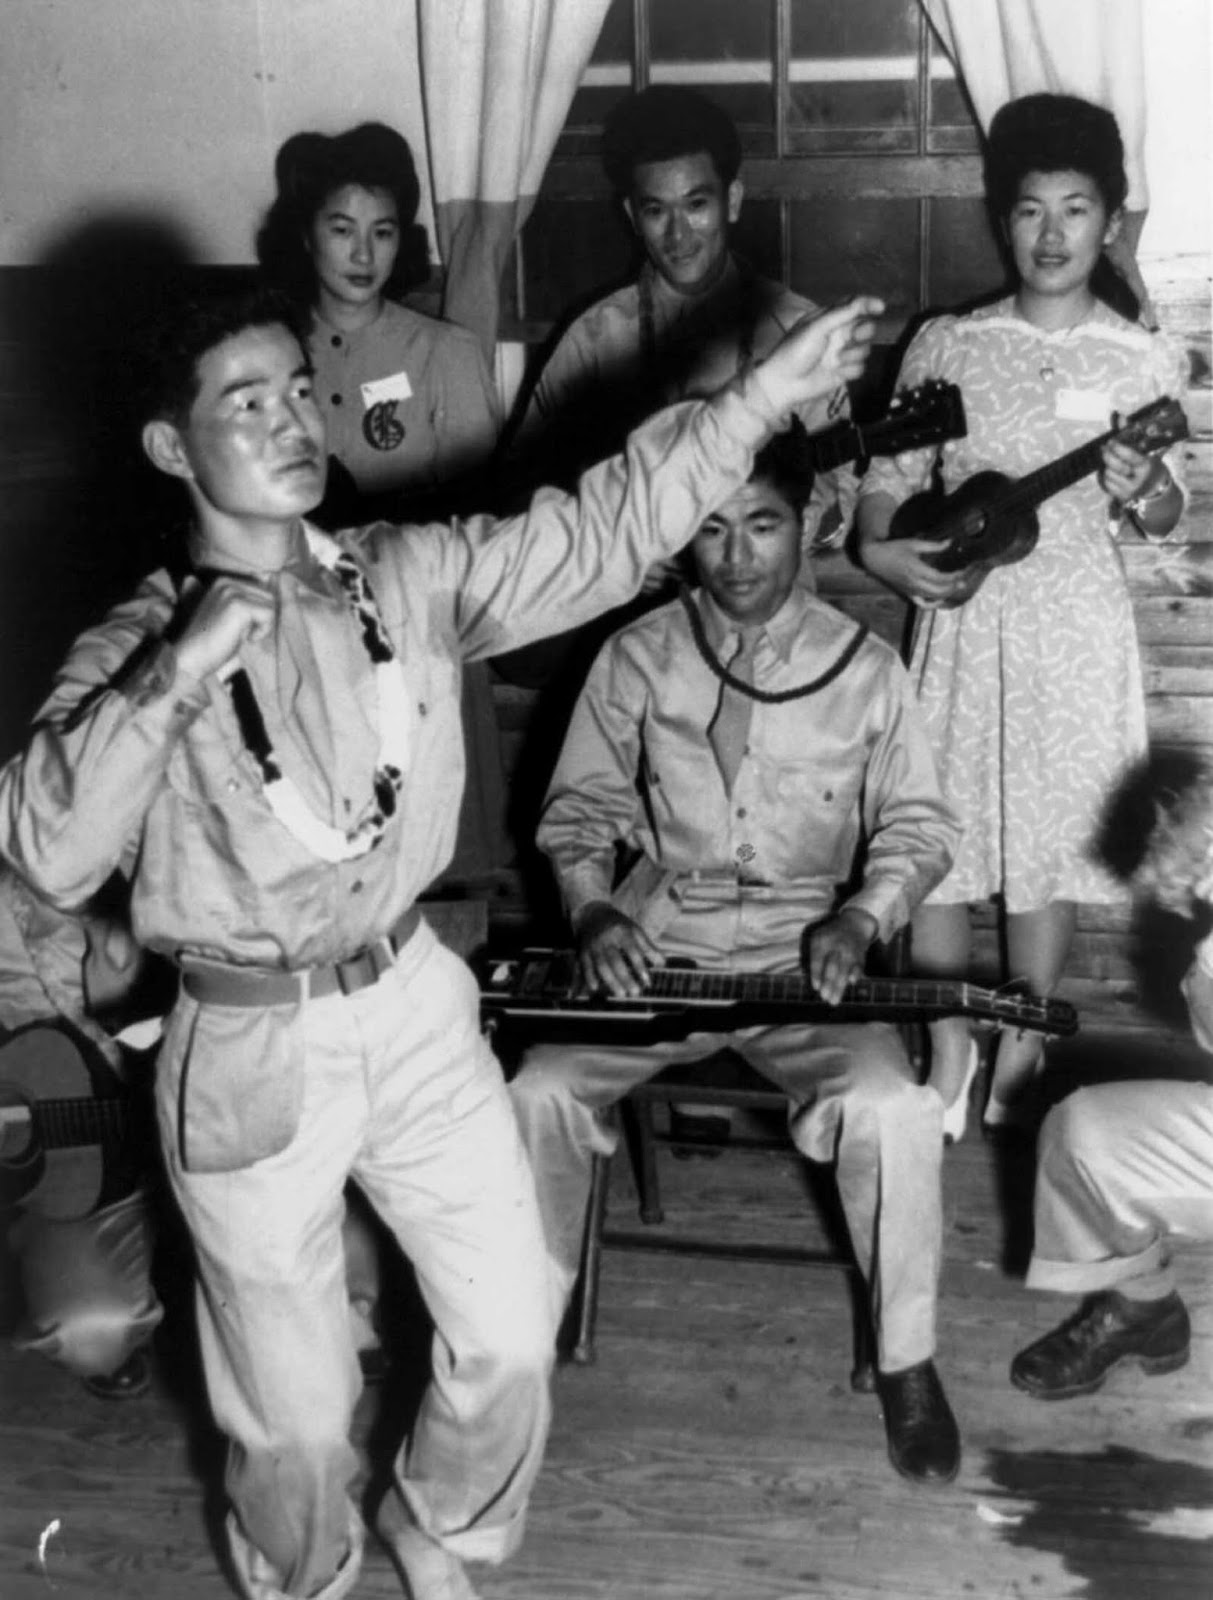 Private Harry Hamada does a hula dance with musical accompaniment. June, 1943.